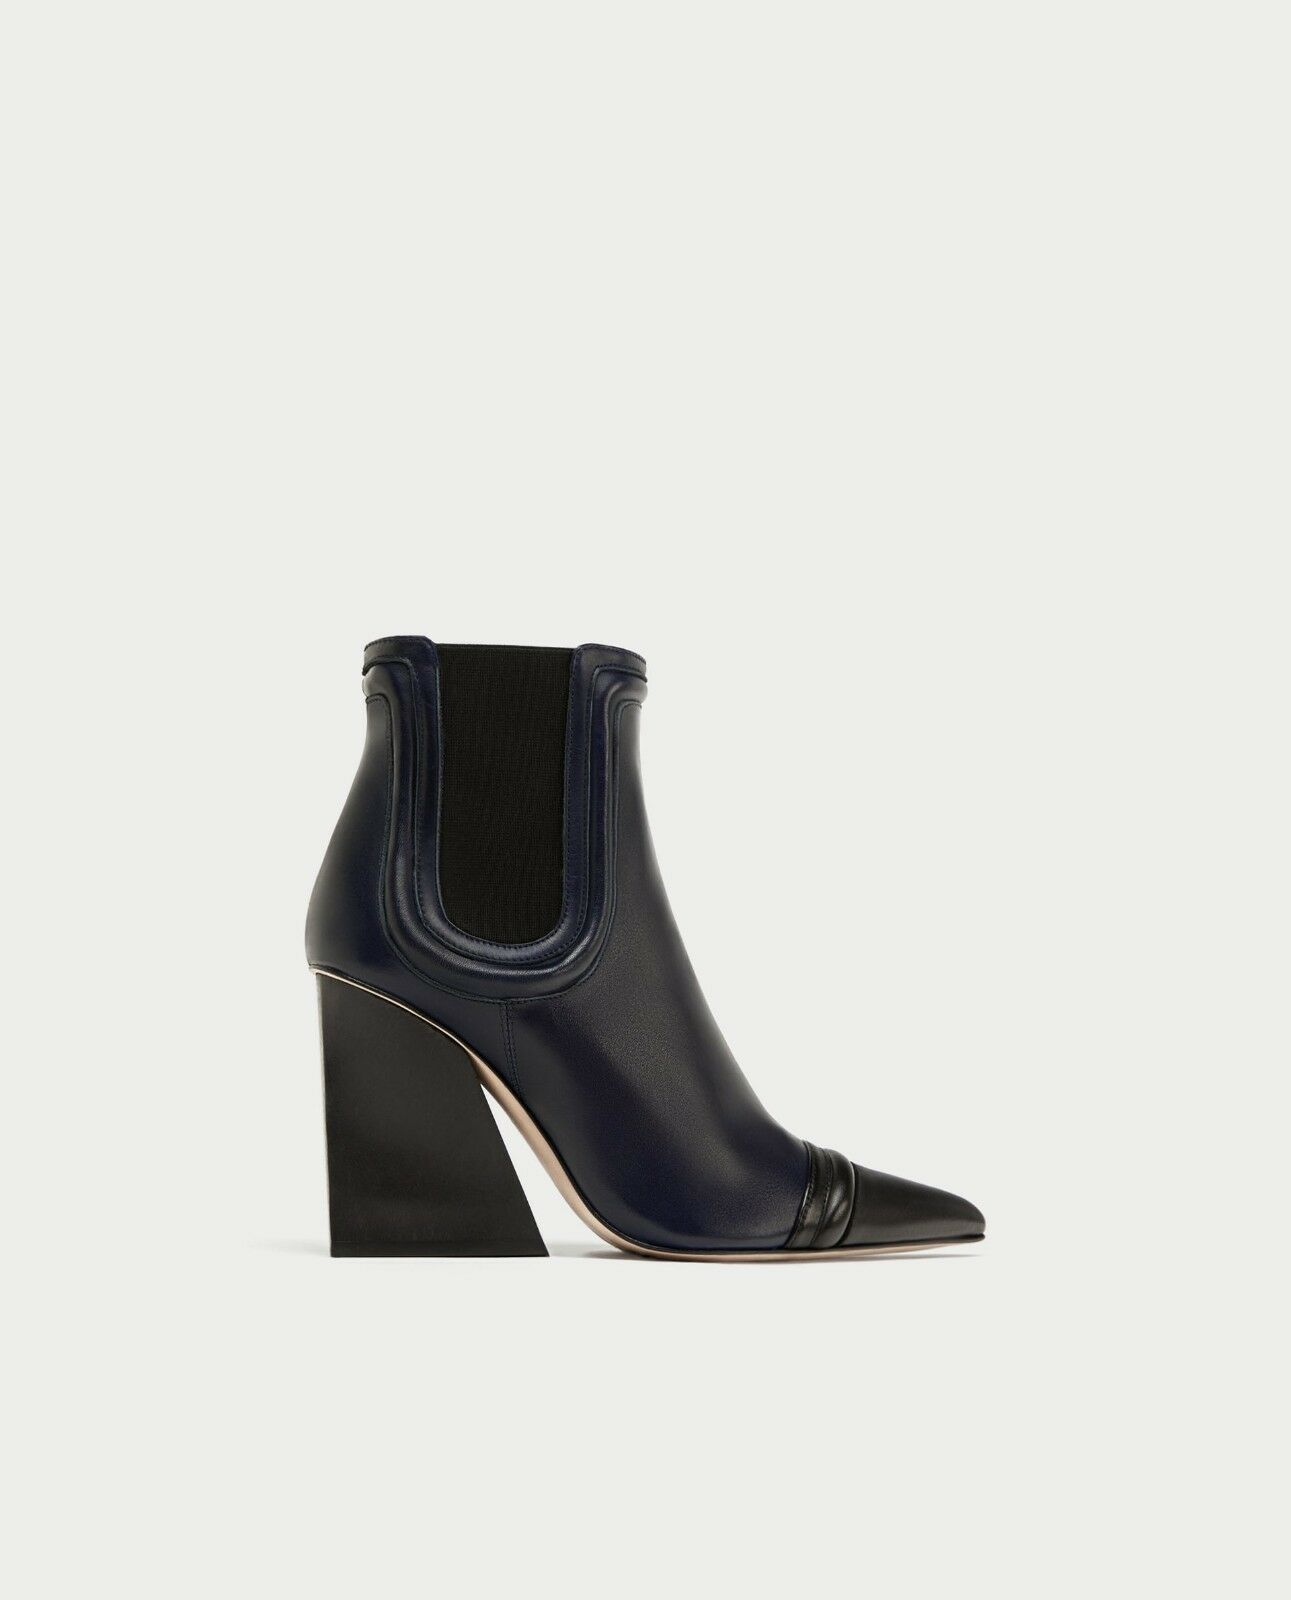 ZARA STUDIO NEW HIGH HEEL LEATHER ANKLE BOOTS WITH ELASTIC SIDE TABS 5134/201